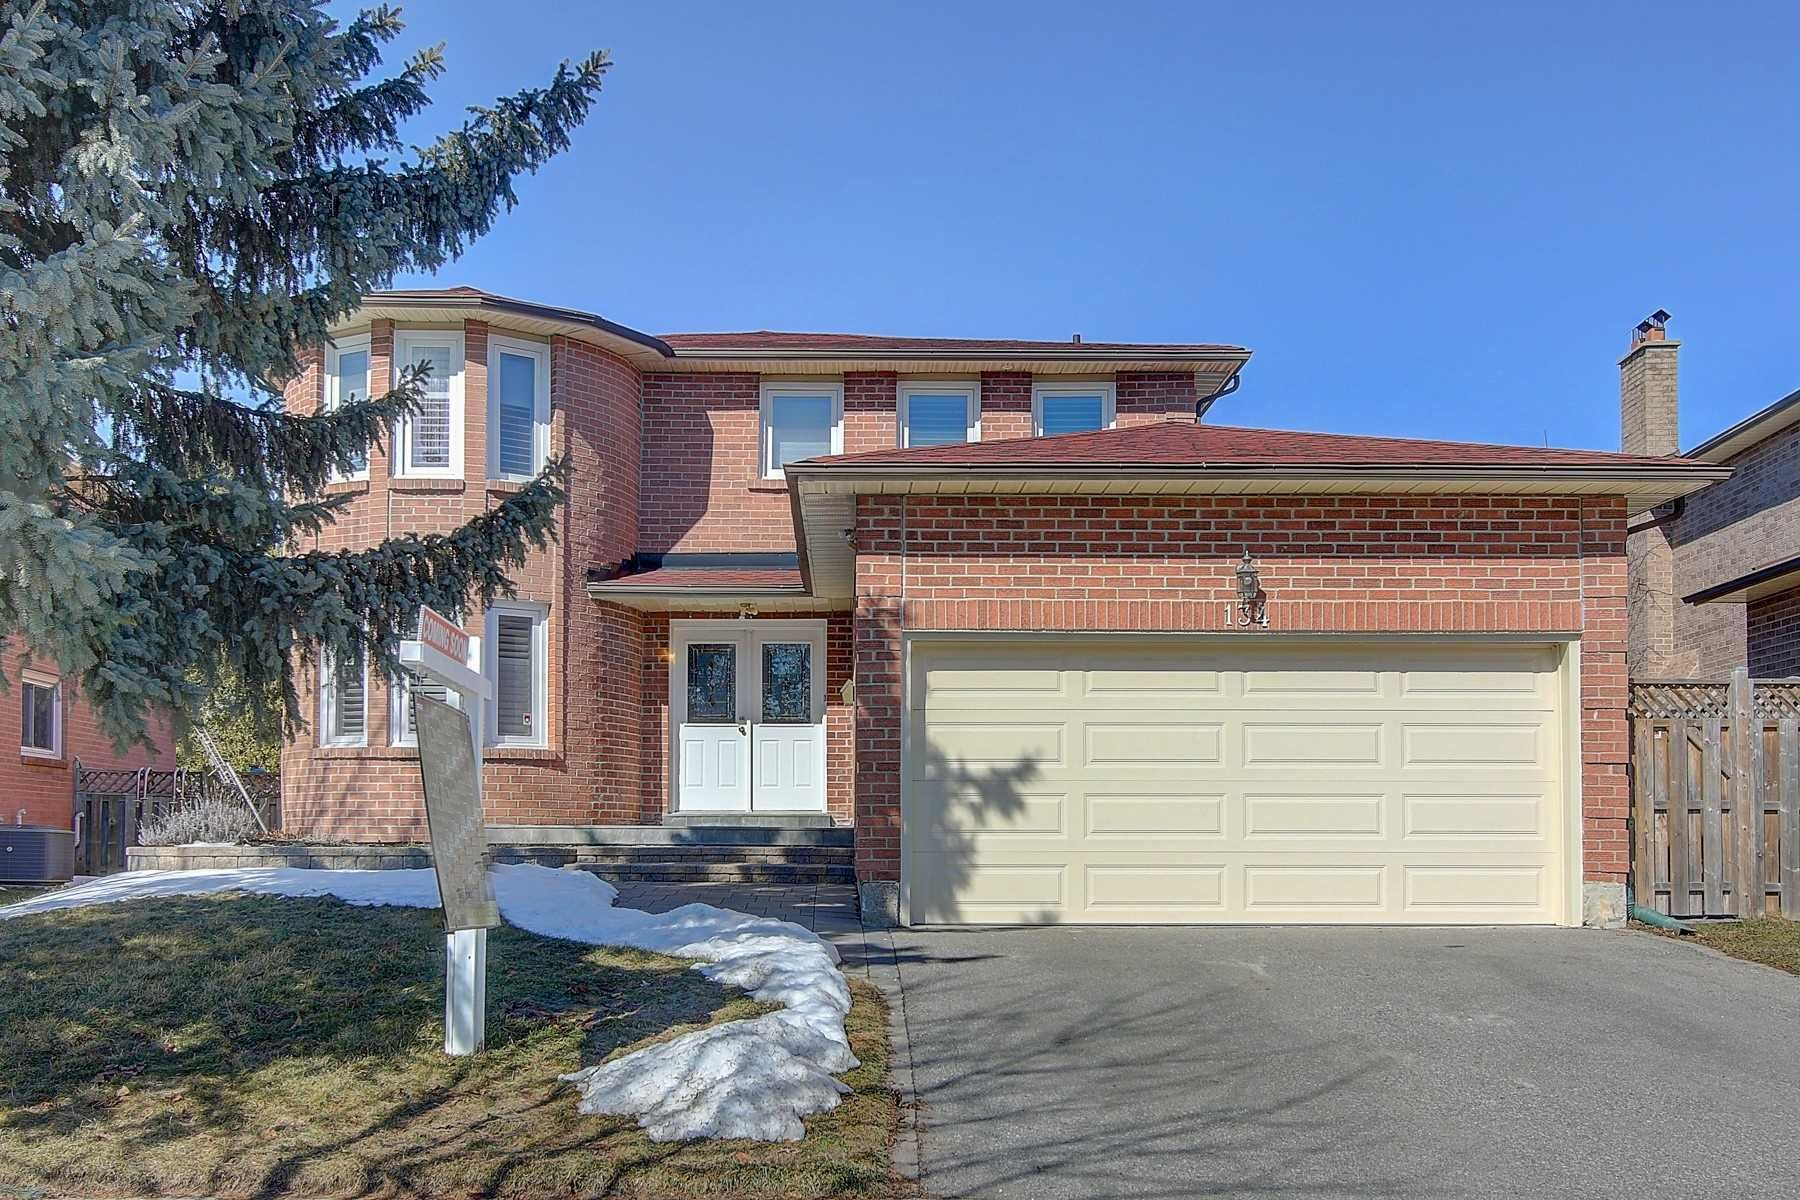 Main Photo: 134 Larkin Ave in Markham: Freehold for sale : MLS®# N4712683